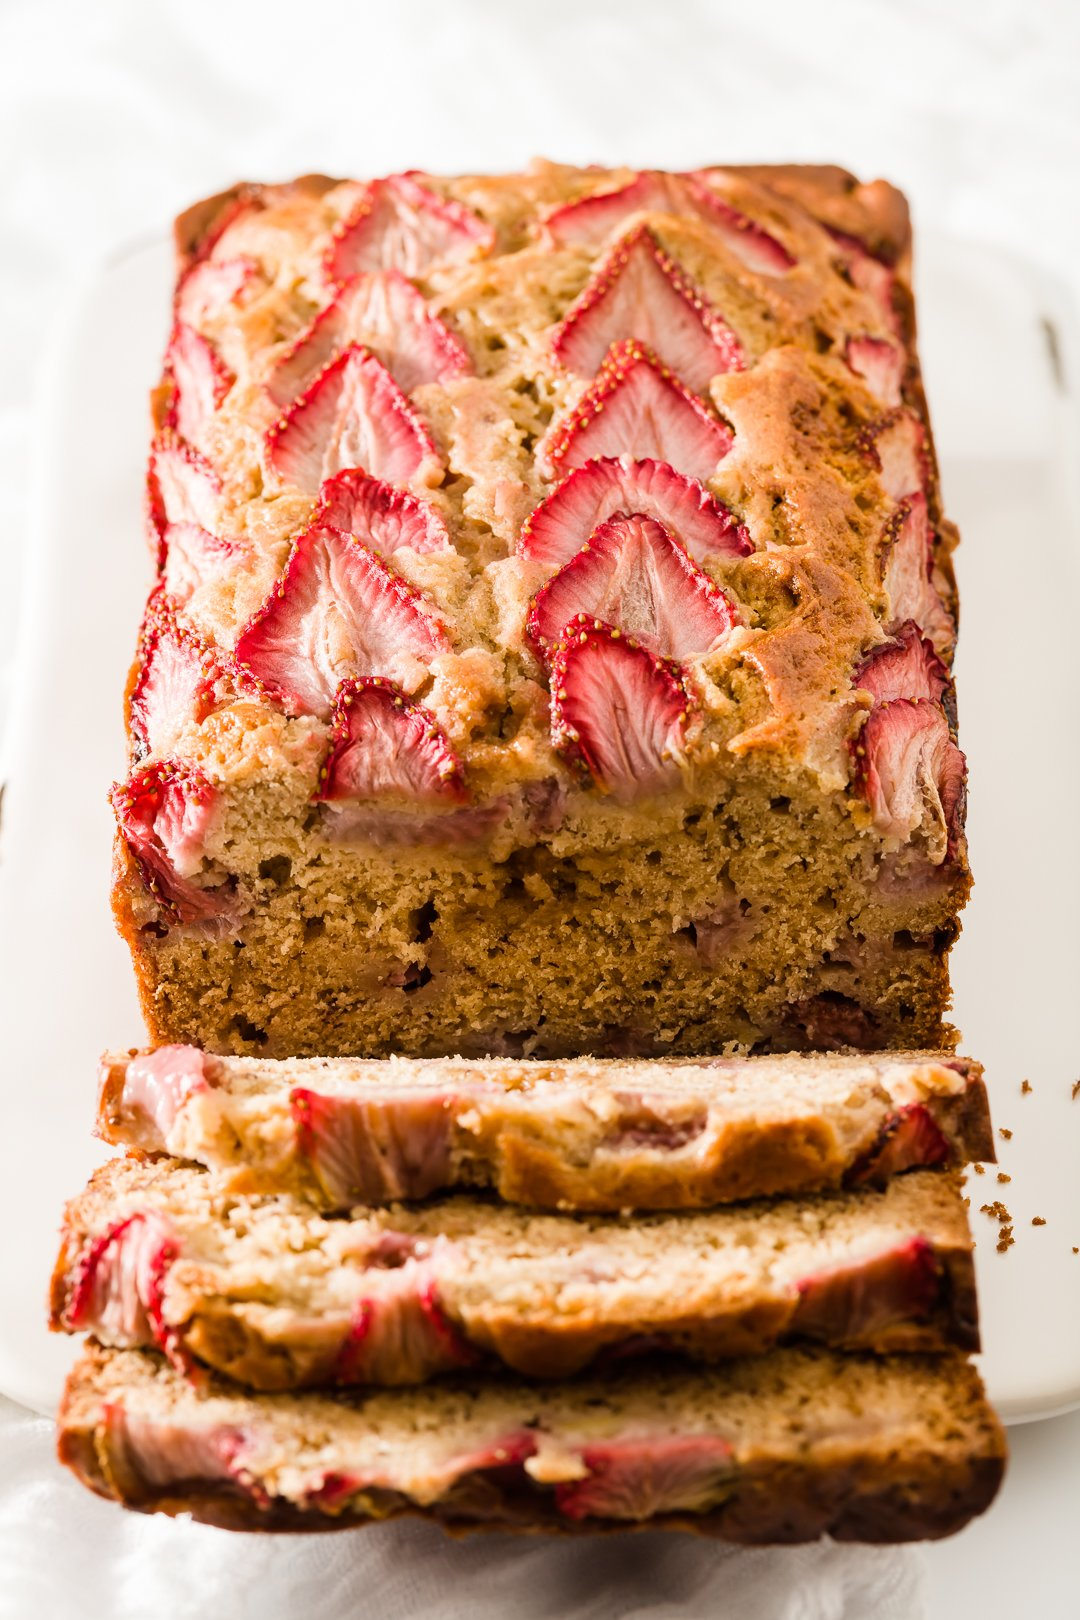 A load of strawberry banana bread with three slices falling down from it